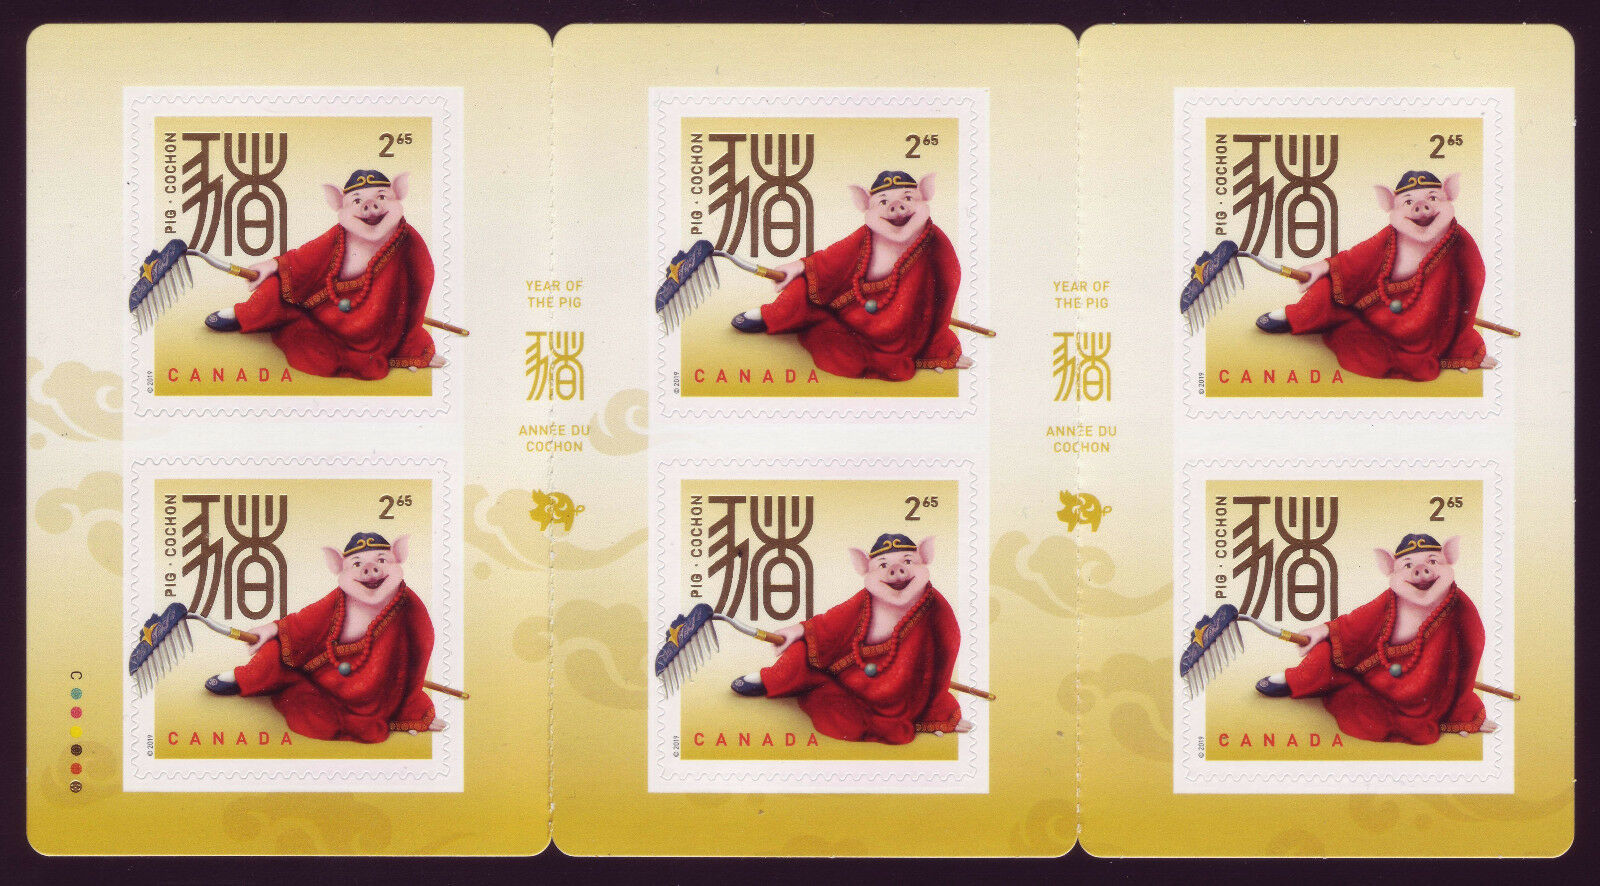 Canada - Year of the Pig (January 18, 2019) self-adhesive booklet pane of 6